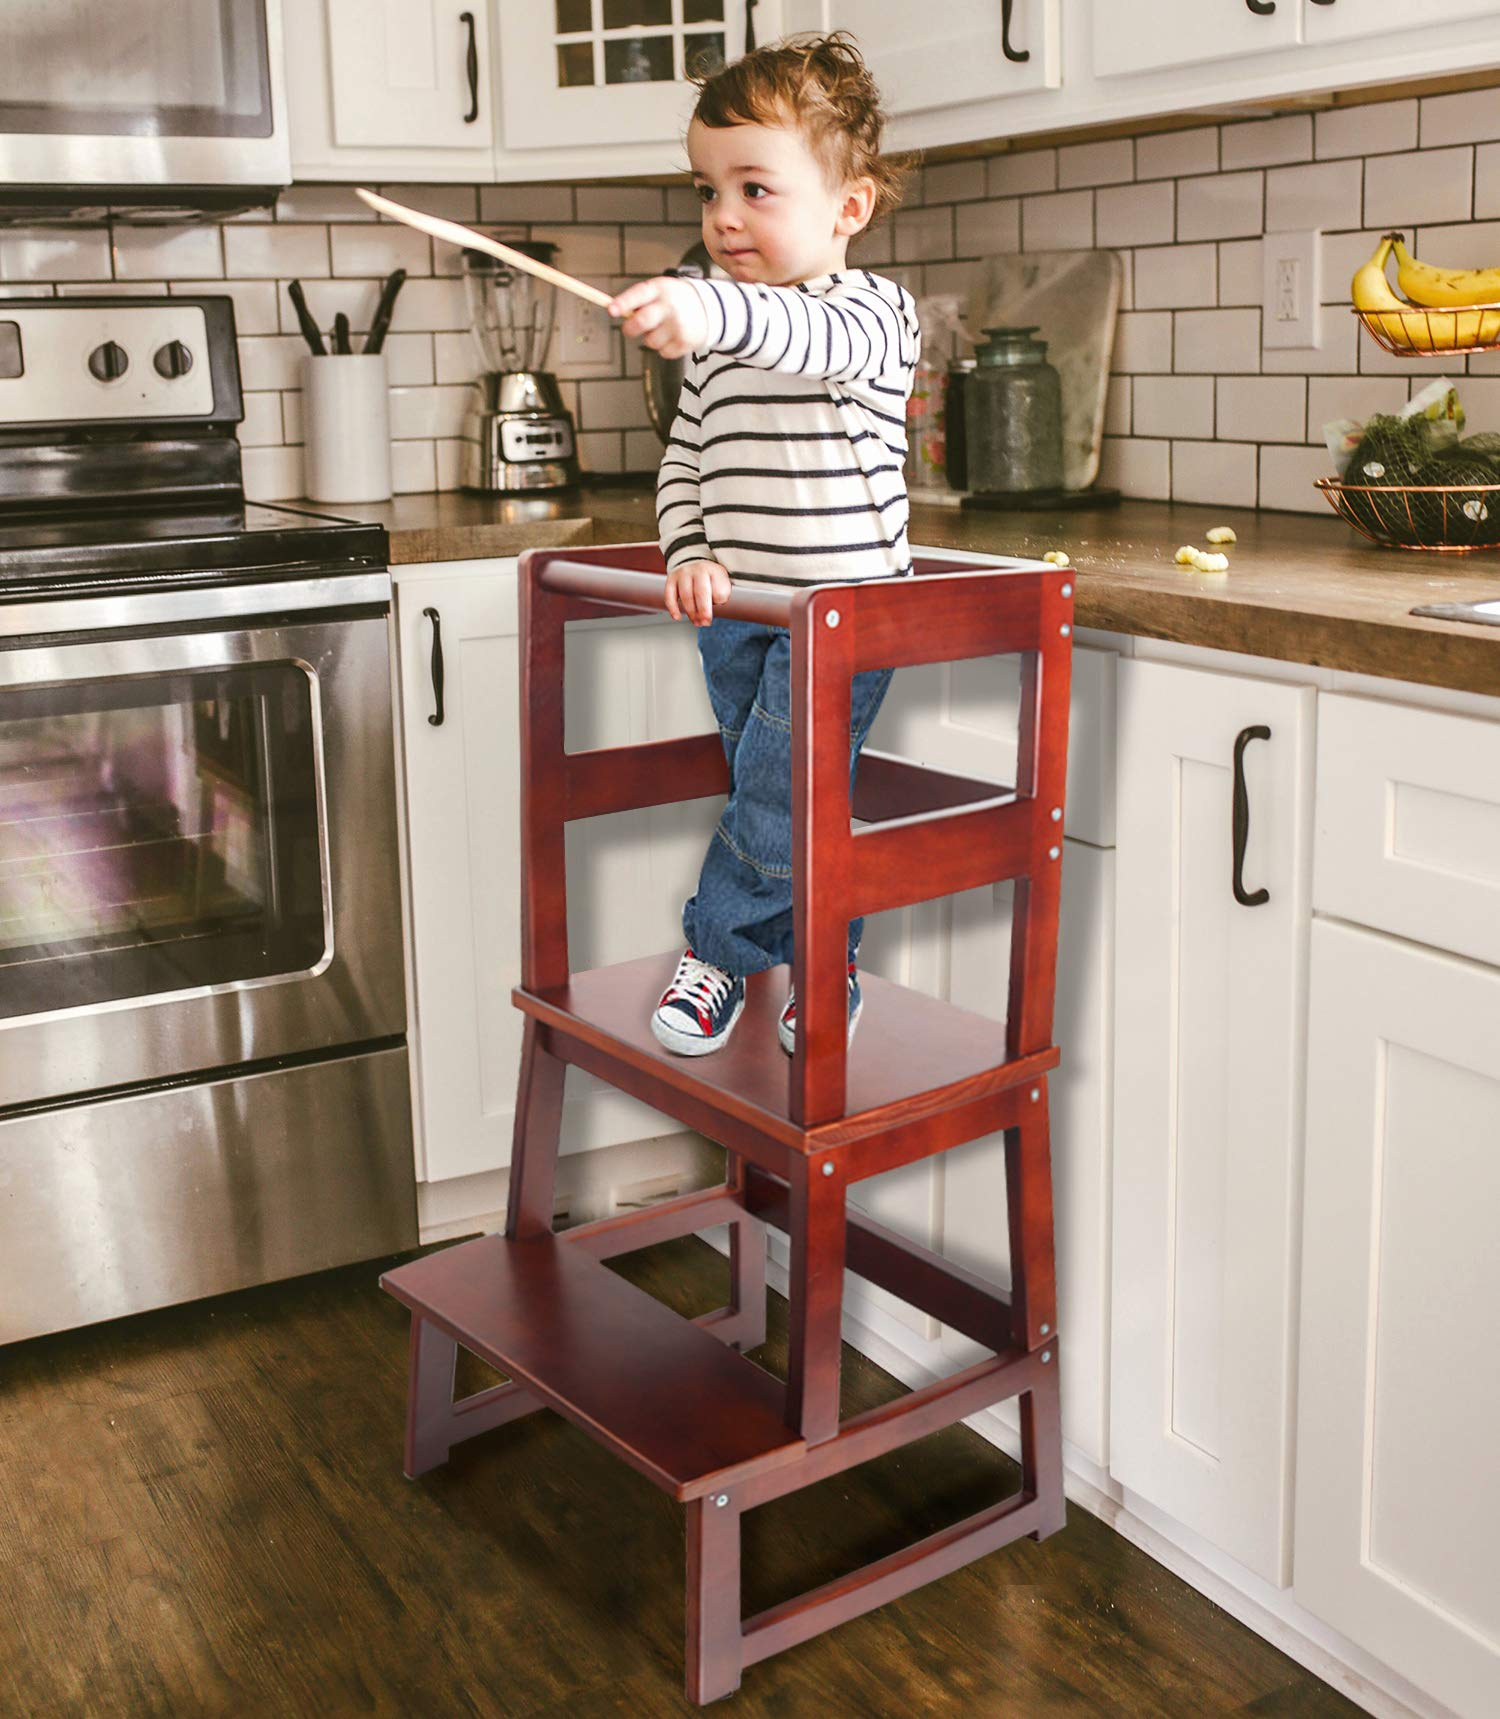 WishaLife Kids Step Stool, Toddler Step Stool, Learning Tower, Kitchen Helper Stool with Safety Rail CPSC Certified - for Toddlers 18 Months and Older(Walnut Color)